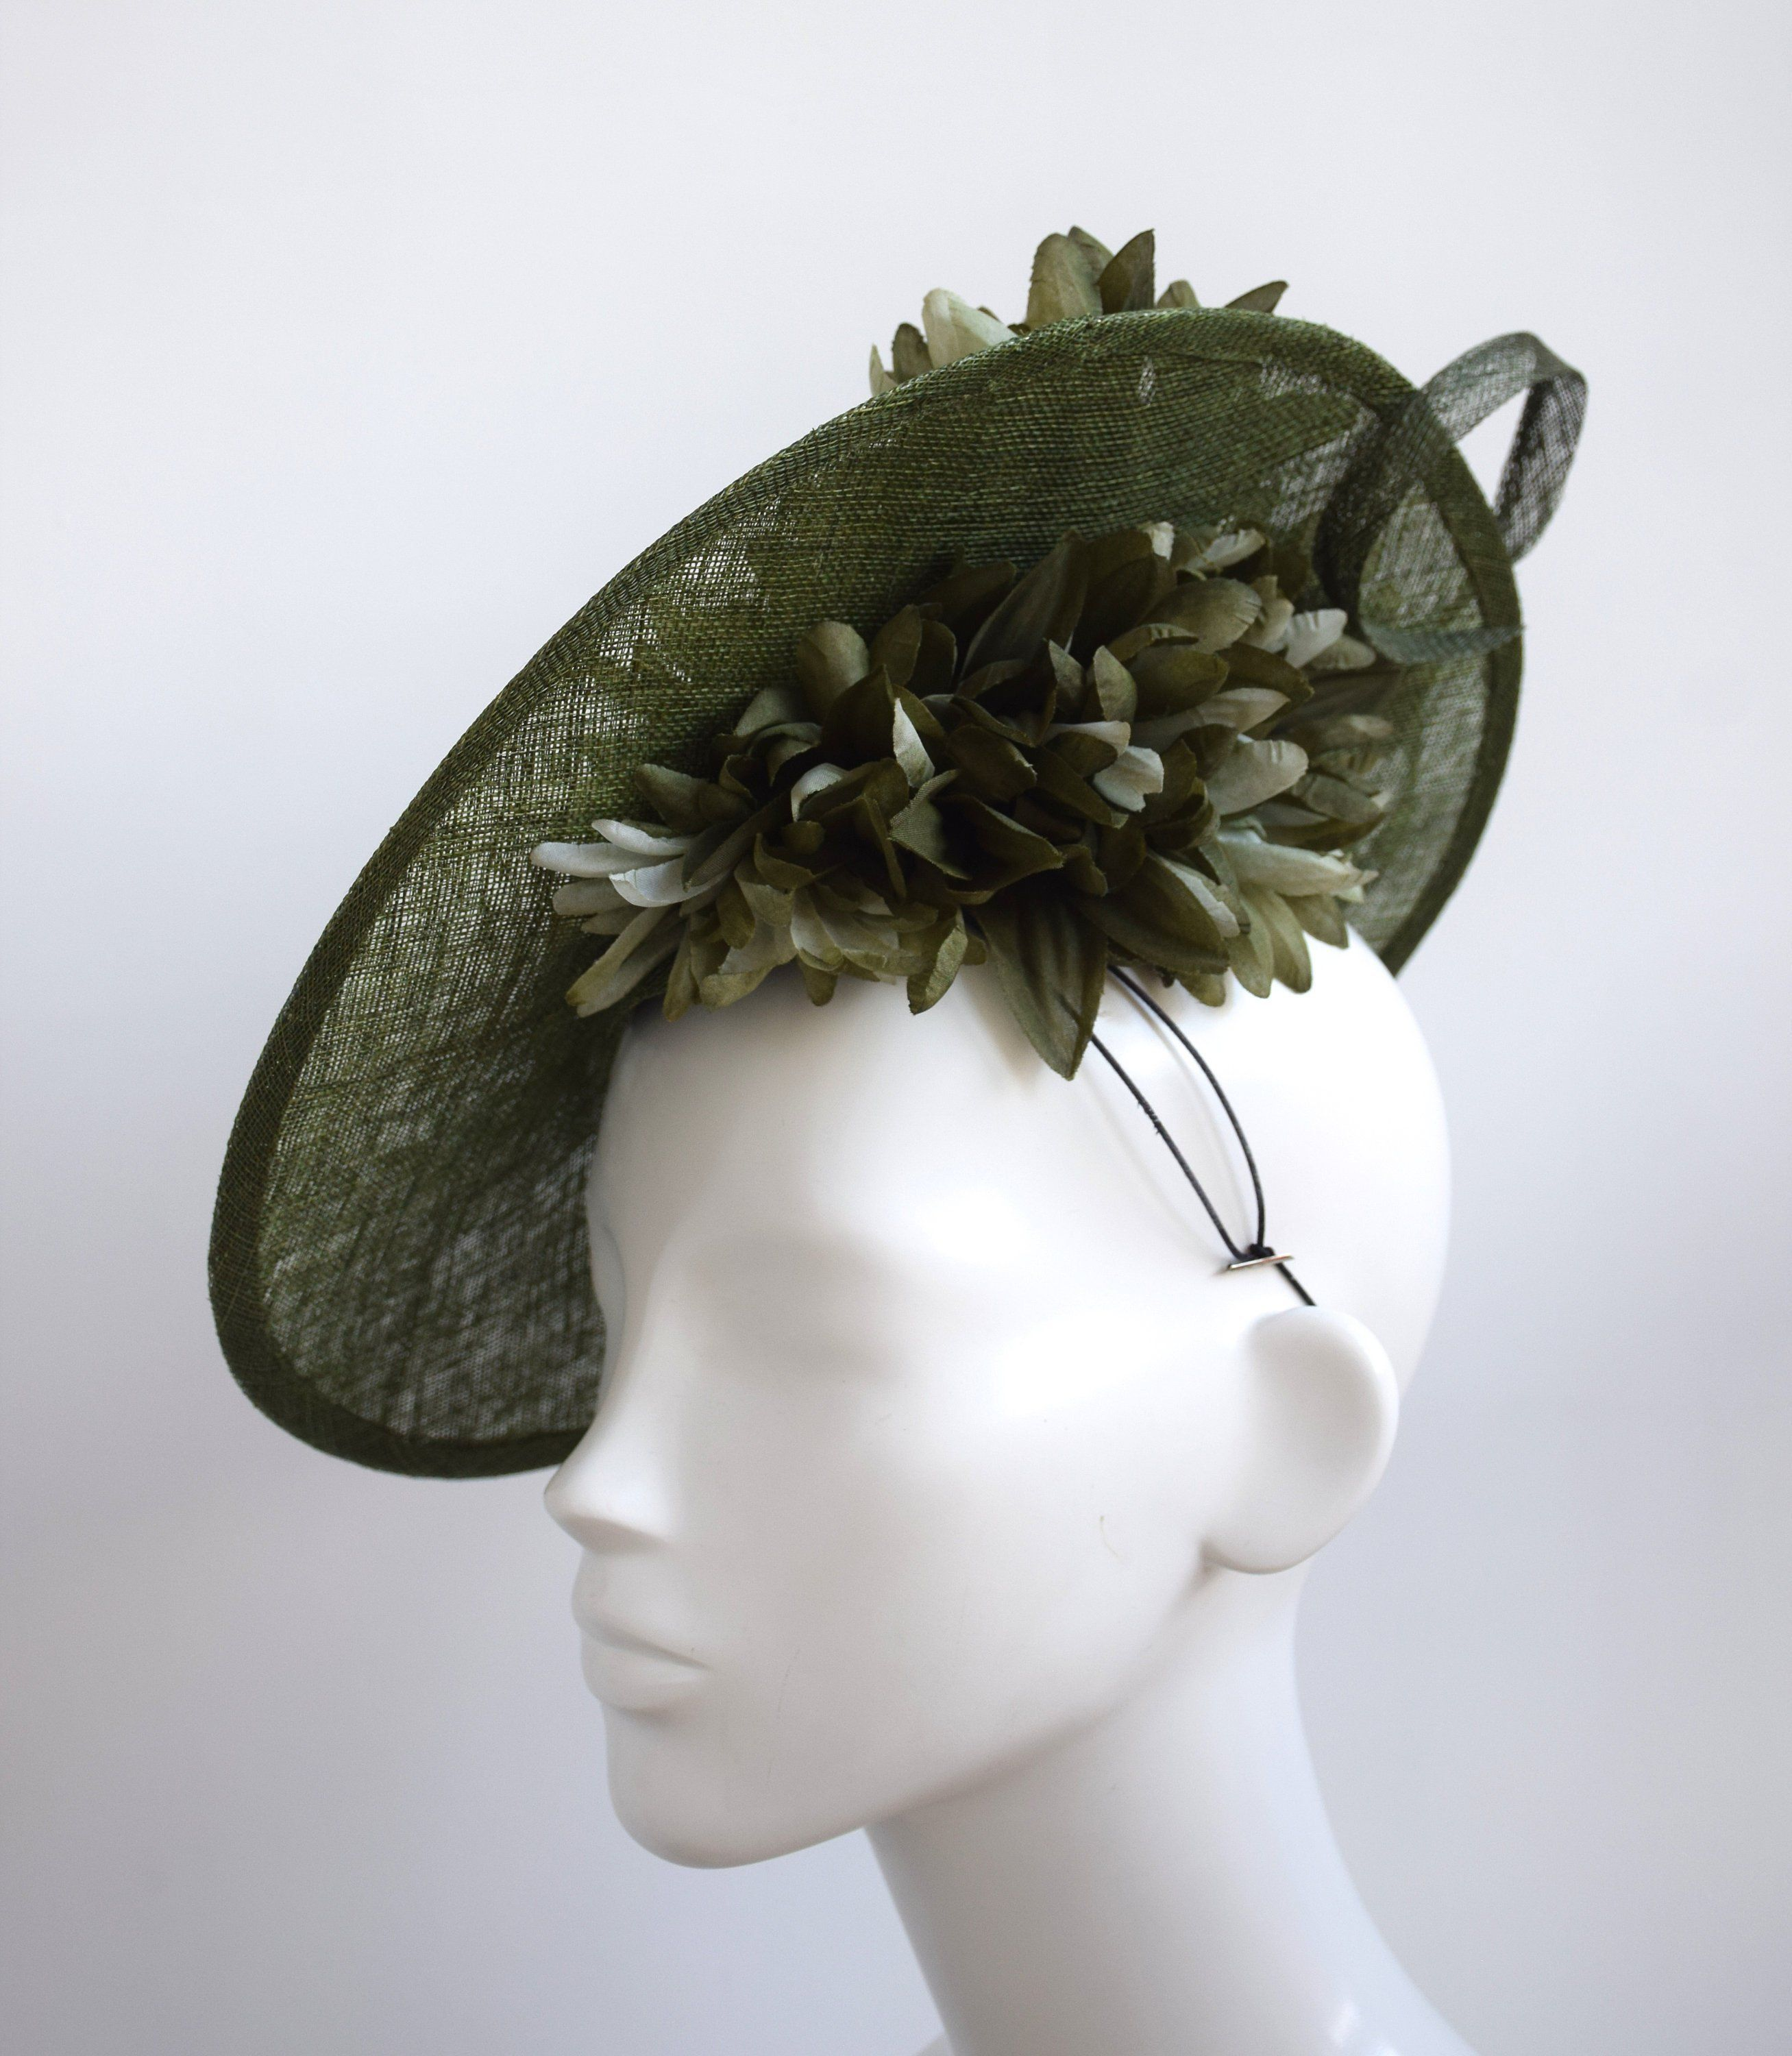 Olive Green Saucer Hat - Dark Deep Green Fascinator - Moss Green Wedding  Headpiece - Fern Green Fascinator - Large Race Day Fascinator by ... 18f58d51ed6